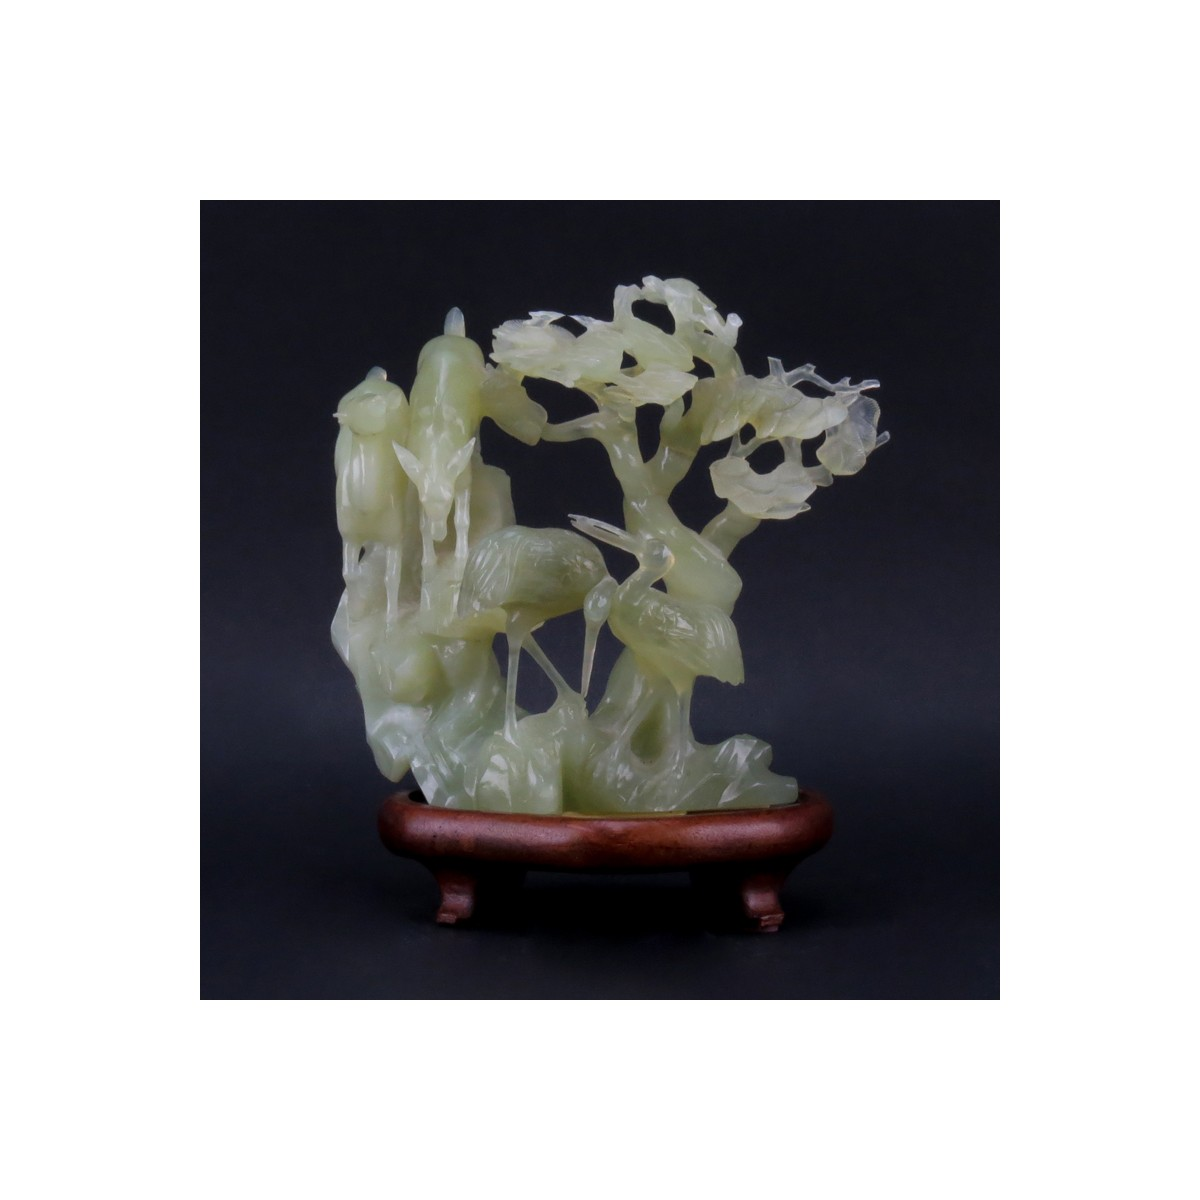 20th Century Chinese Carved Serpentine Bird Group on Wood Stand. Unsigned. Losses. Please examine c